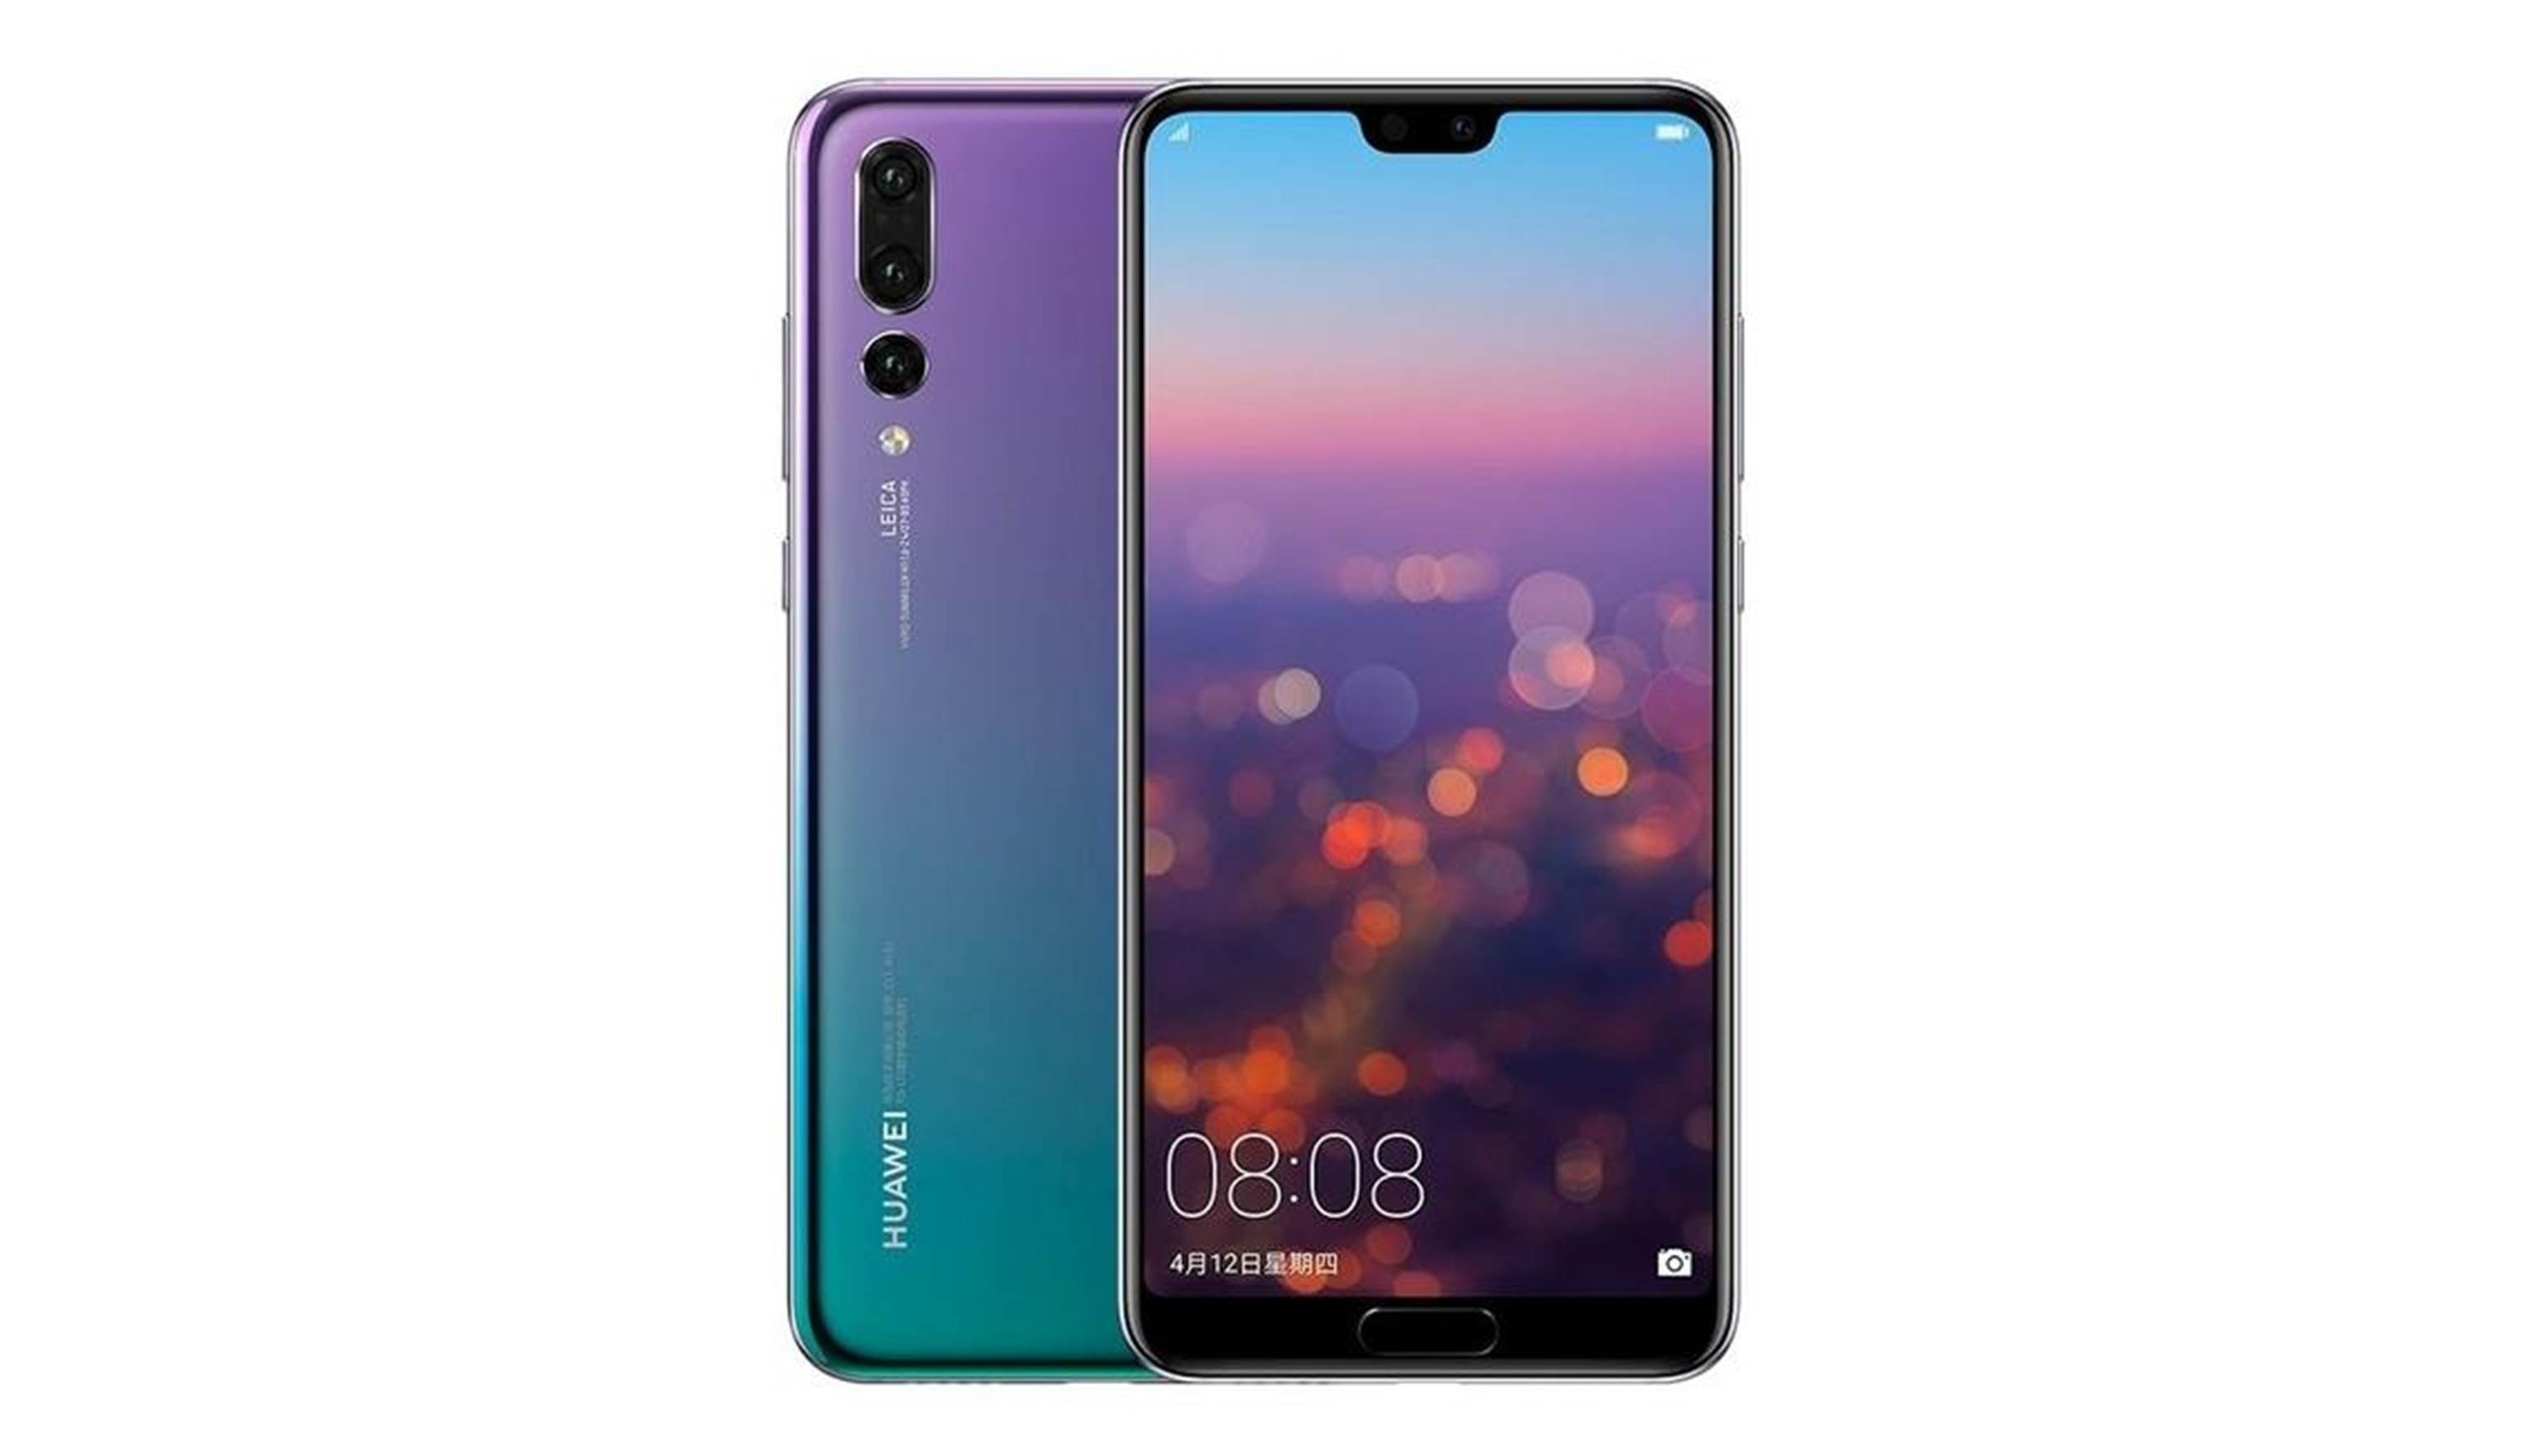 https://hnsgsfp.imgix.net/4/images/detailed/32/Huawei_P20_Pro_128GB_-_Twilight_.jpg?fit=fill&bg=0FFF&w=3072&h=1766&auto=format,compress